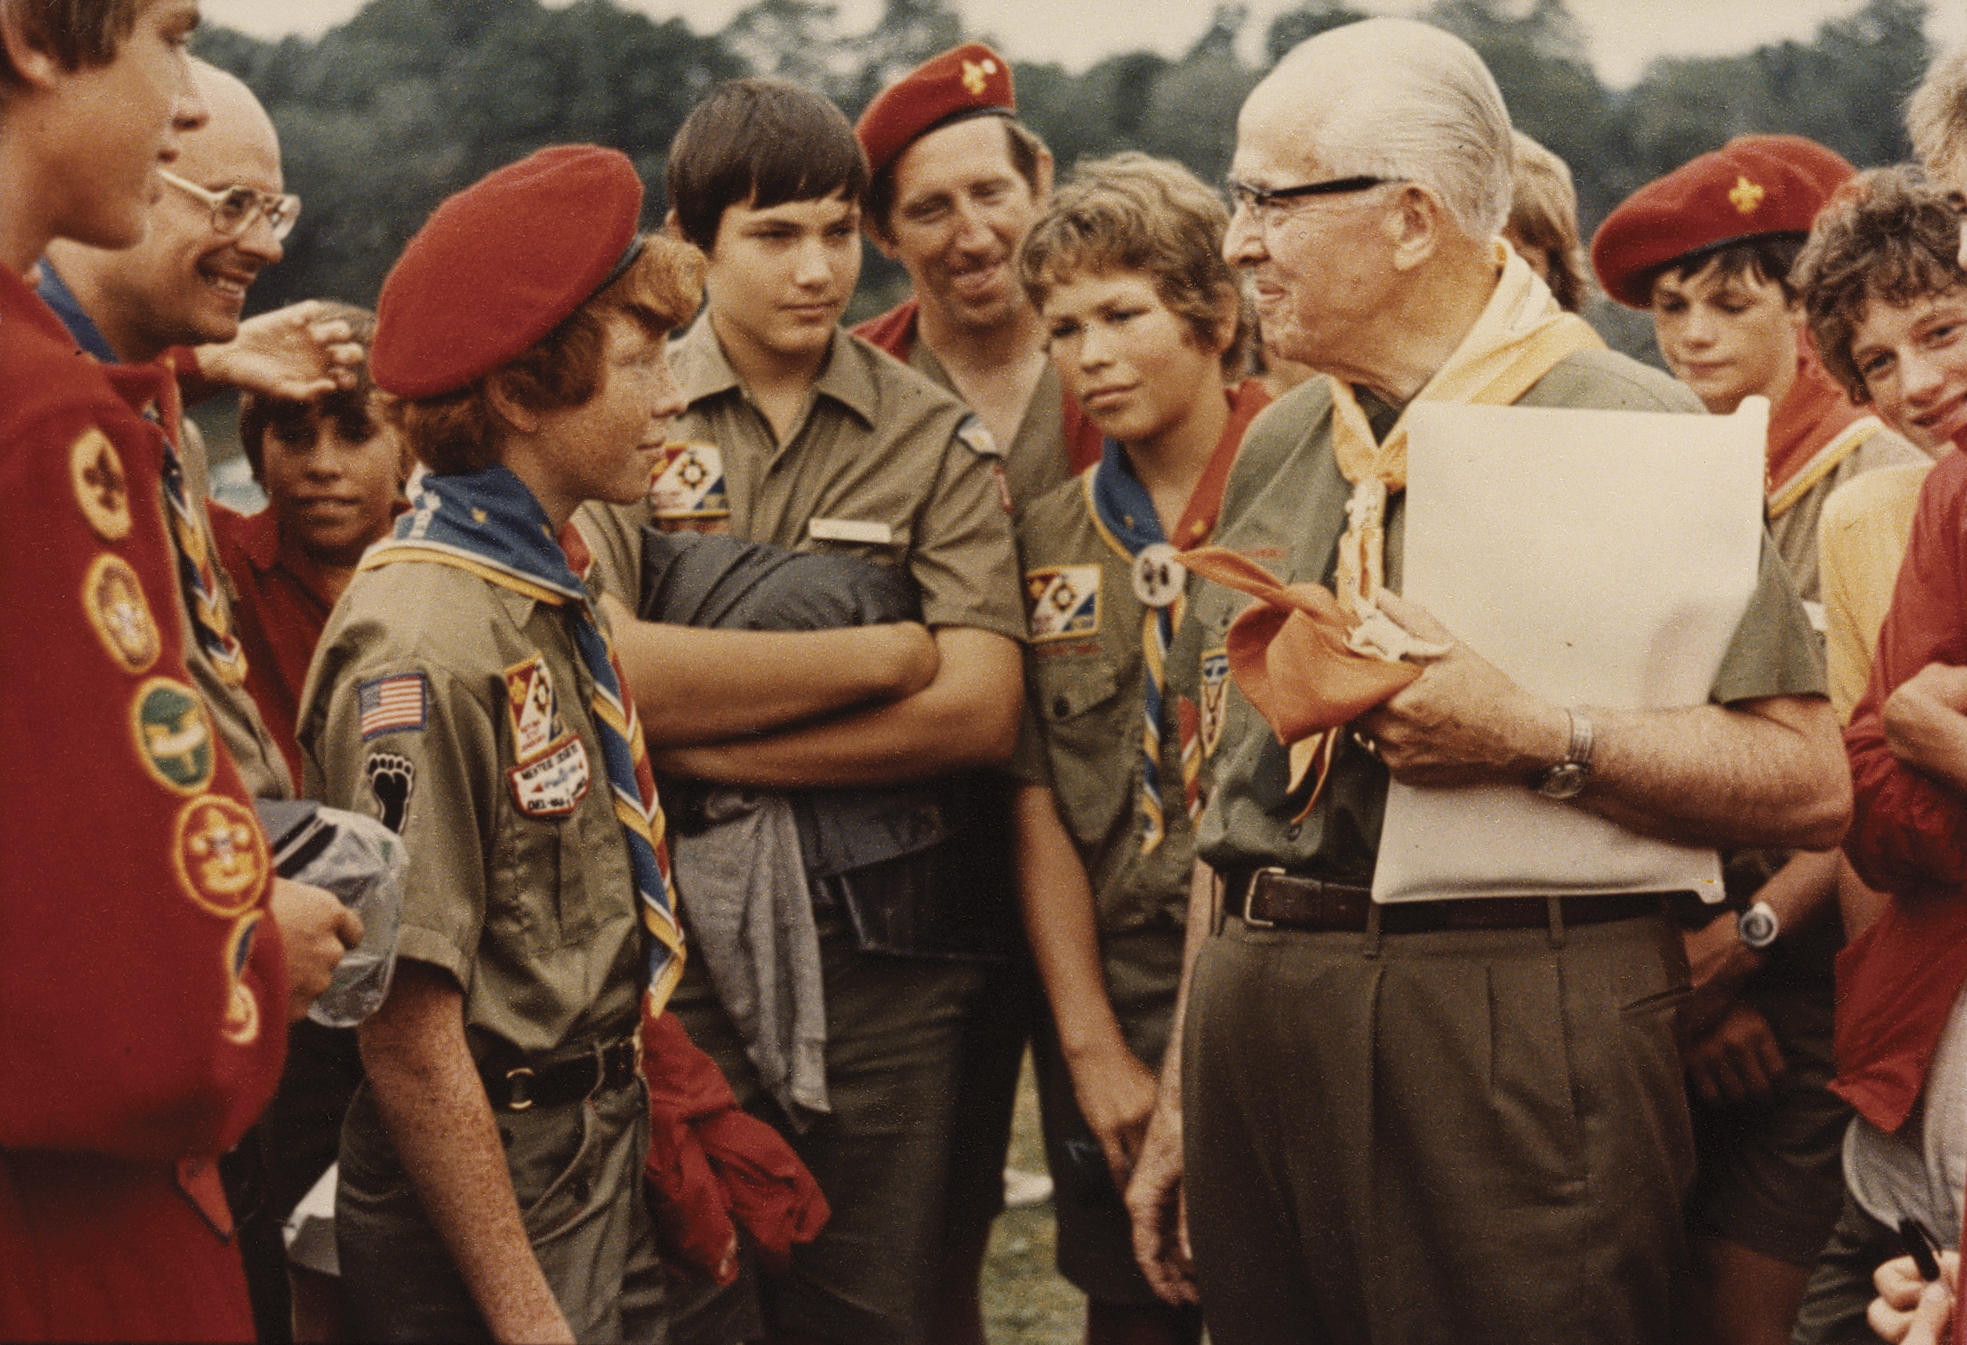 President Benson standing in Scout uniform with other Boy Scouts, around 1977.